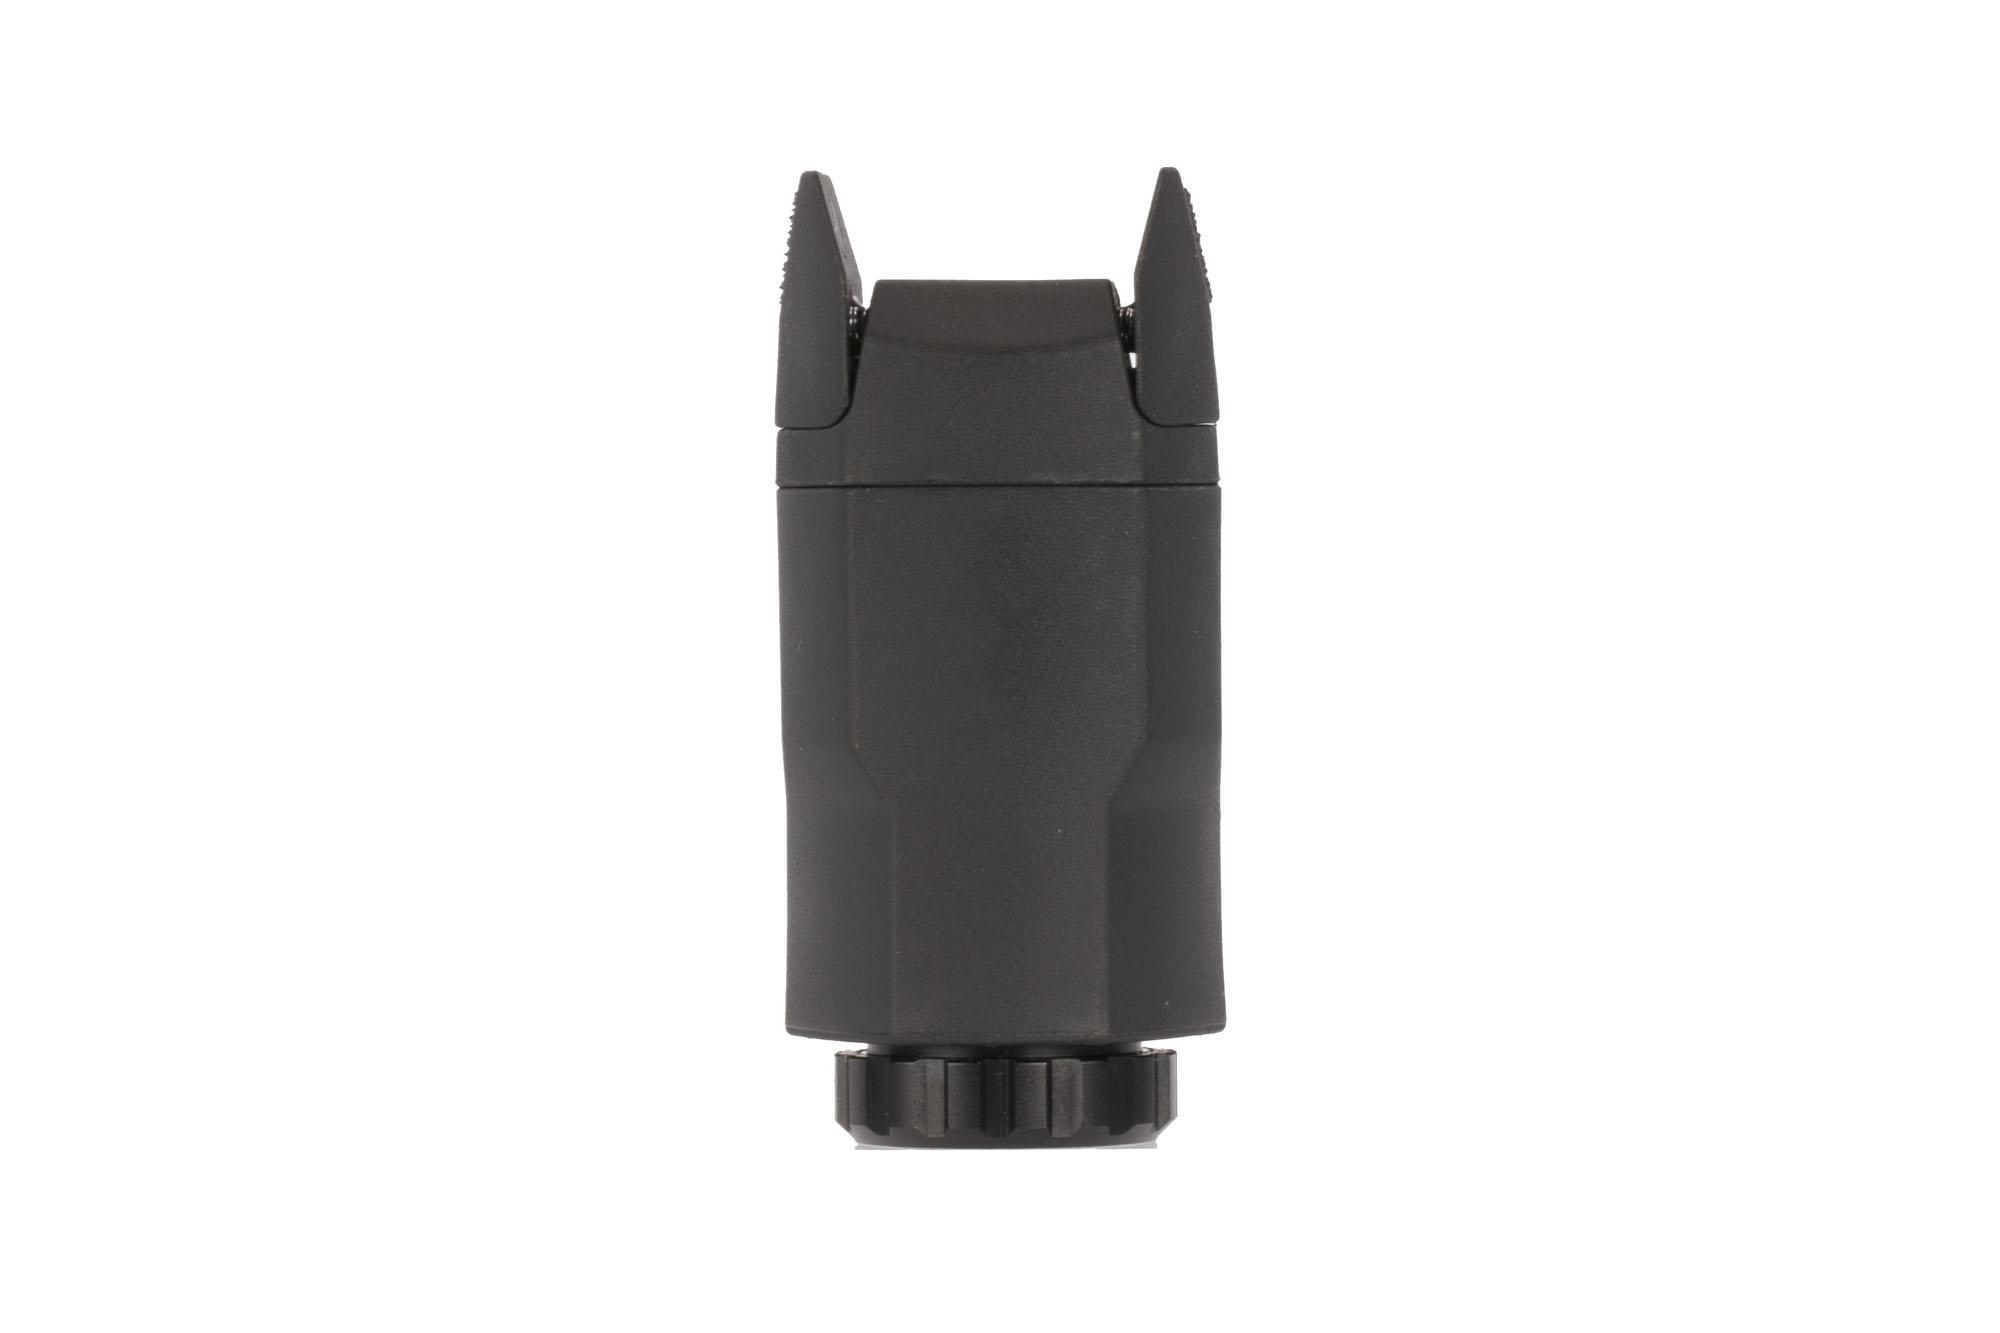 The aplc compact pistol mounted light is flush mounted with a large variety of handguns